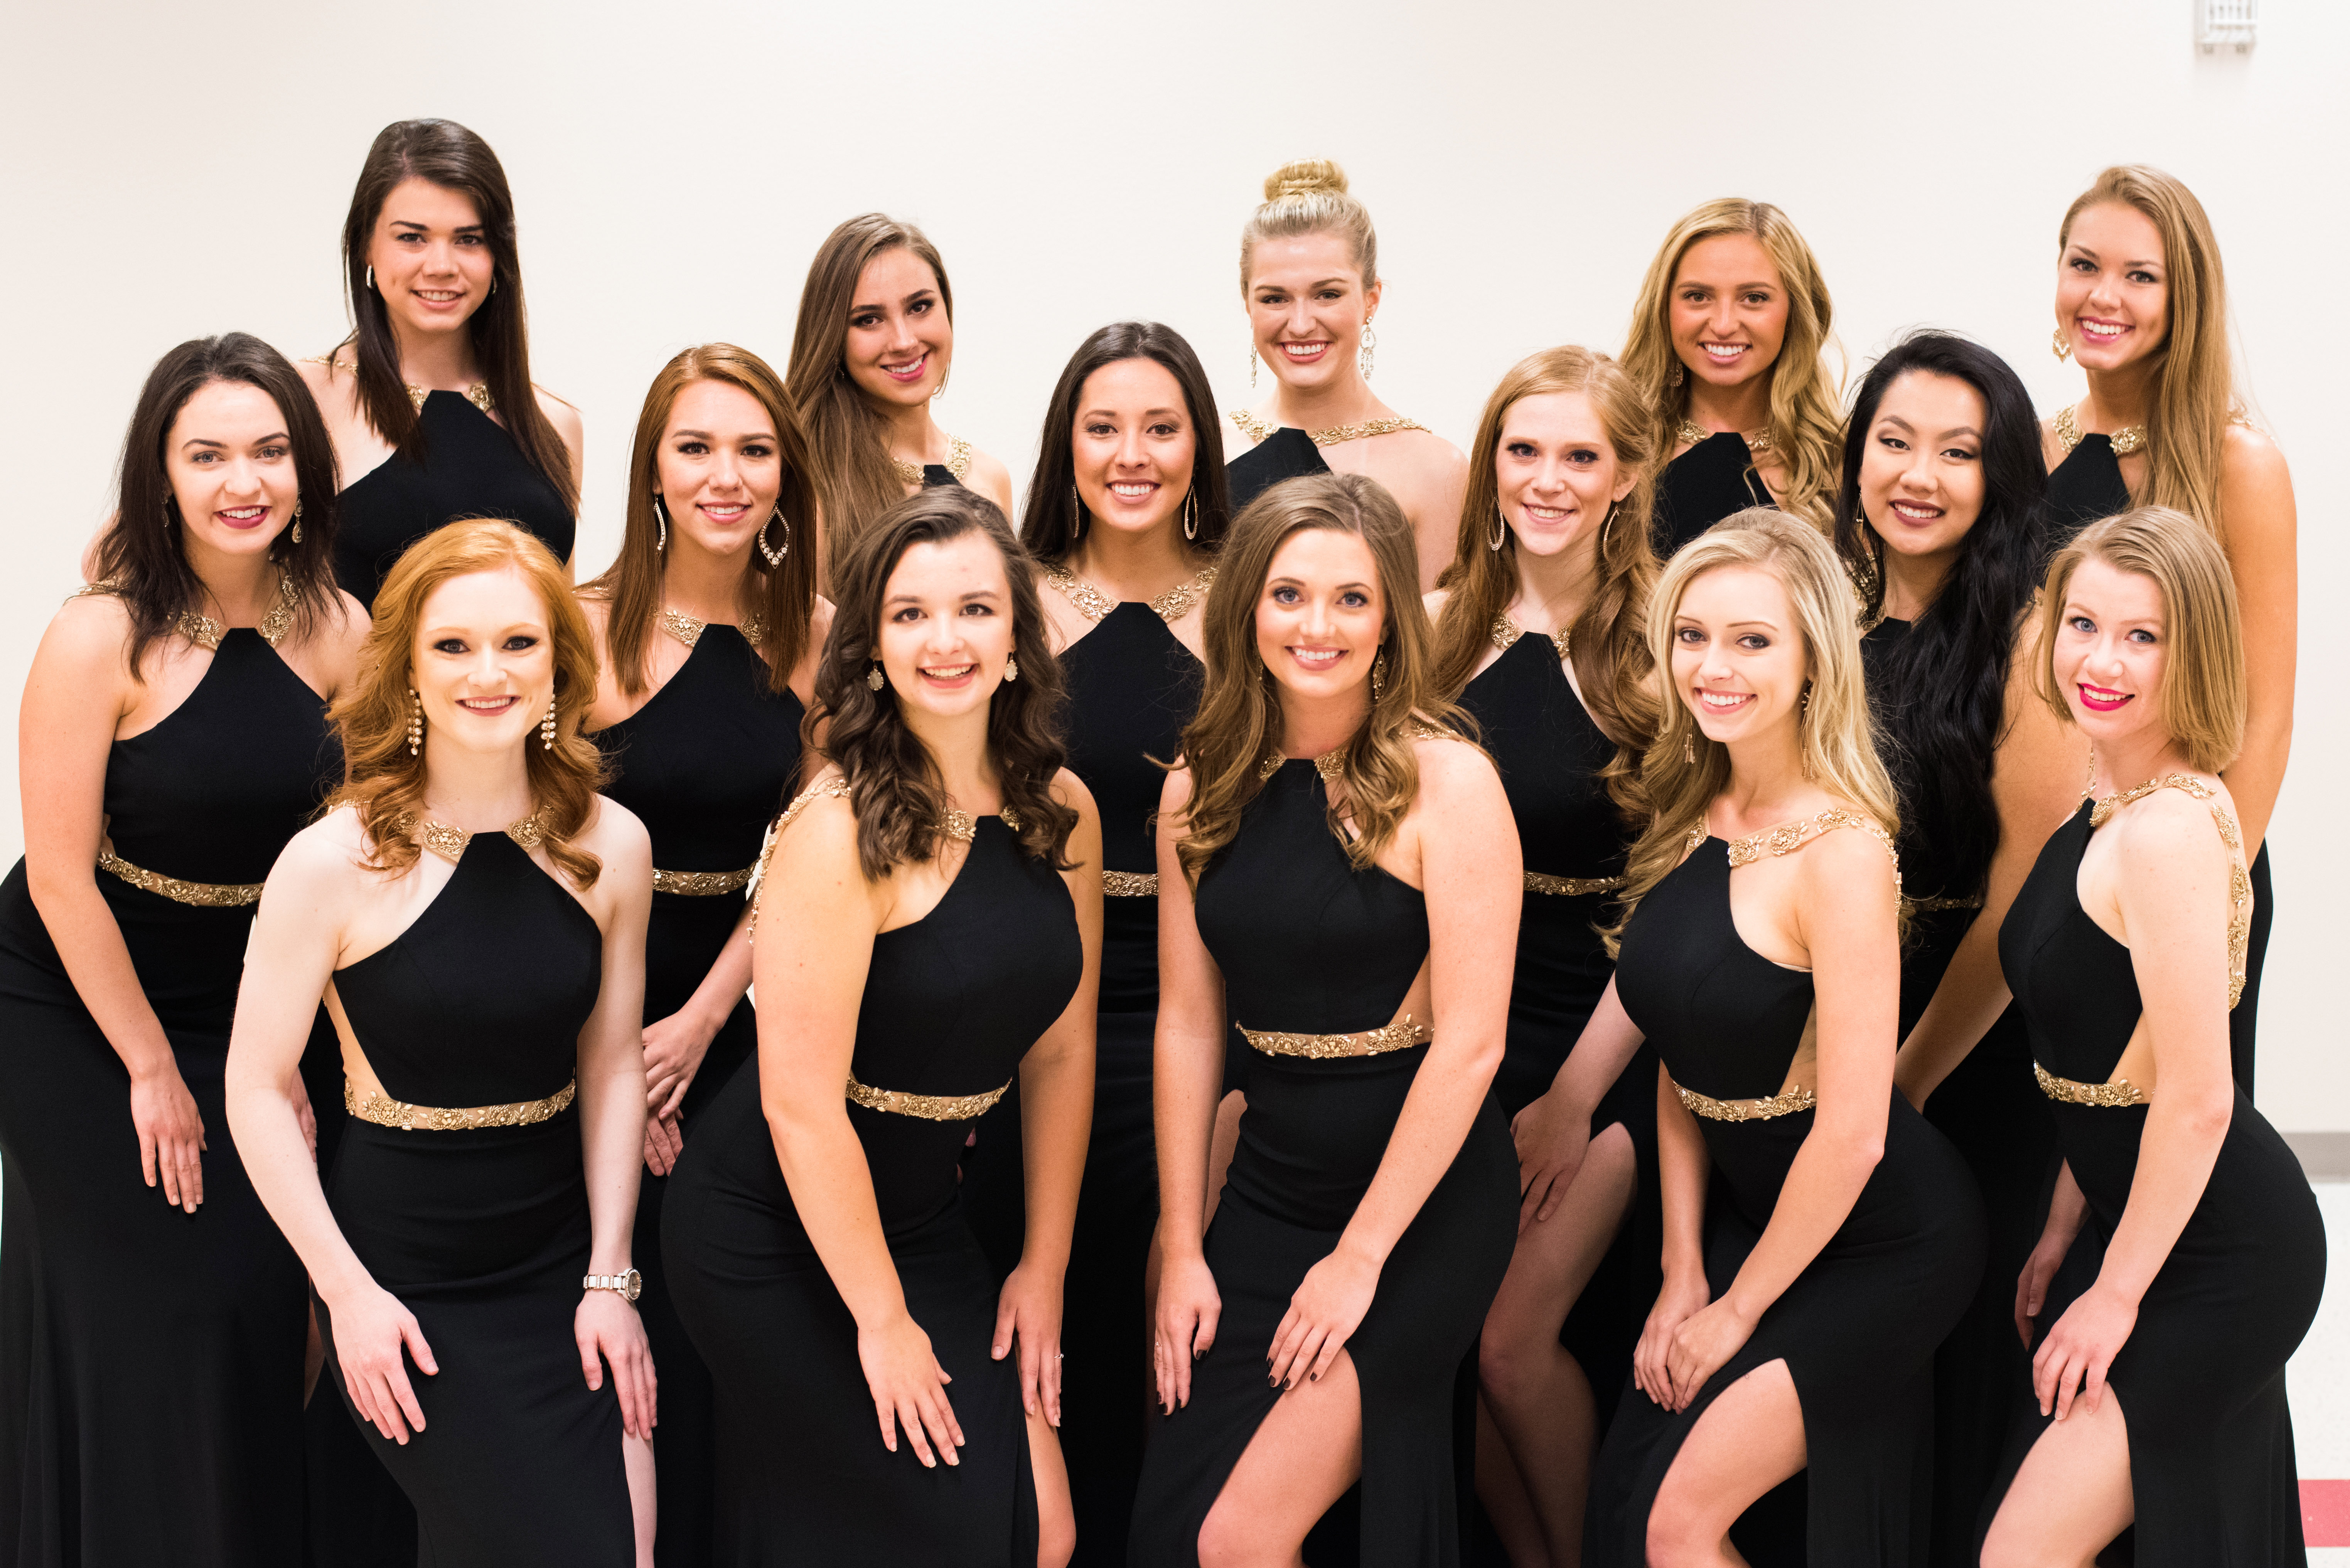 Miss missouri state fair pageant -  Isabel Maclachlan Miss Rapid City Rapid City Madeline Gould Miss Sioux Falls Sioux Falls Amber Hulse Miss Central State S Fair Hot Springs